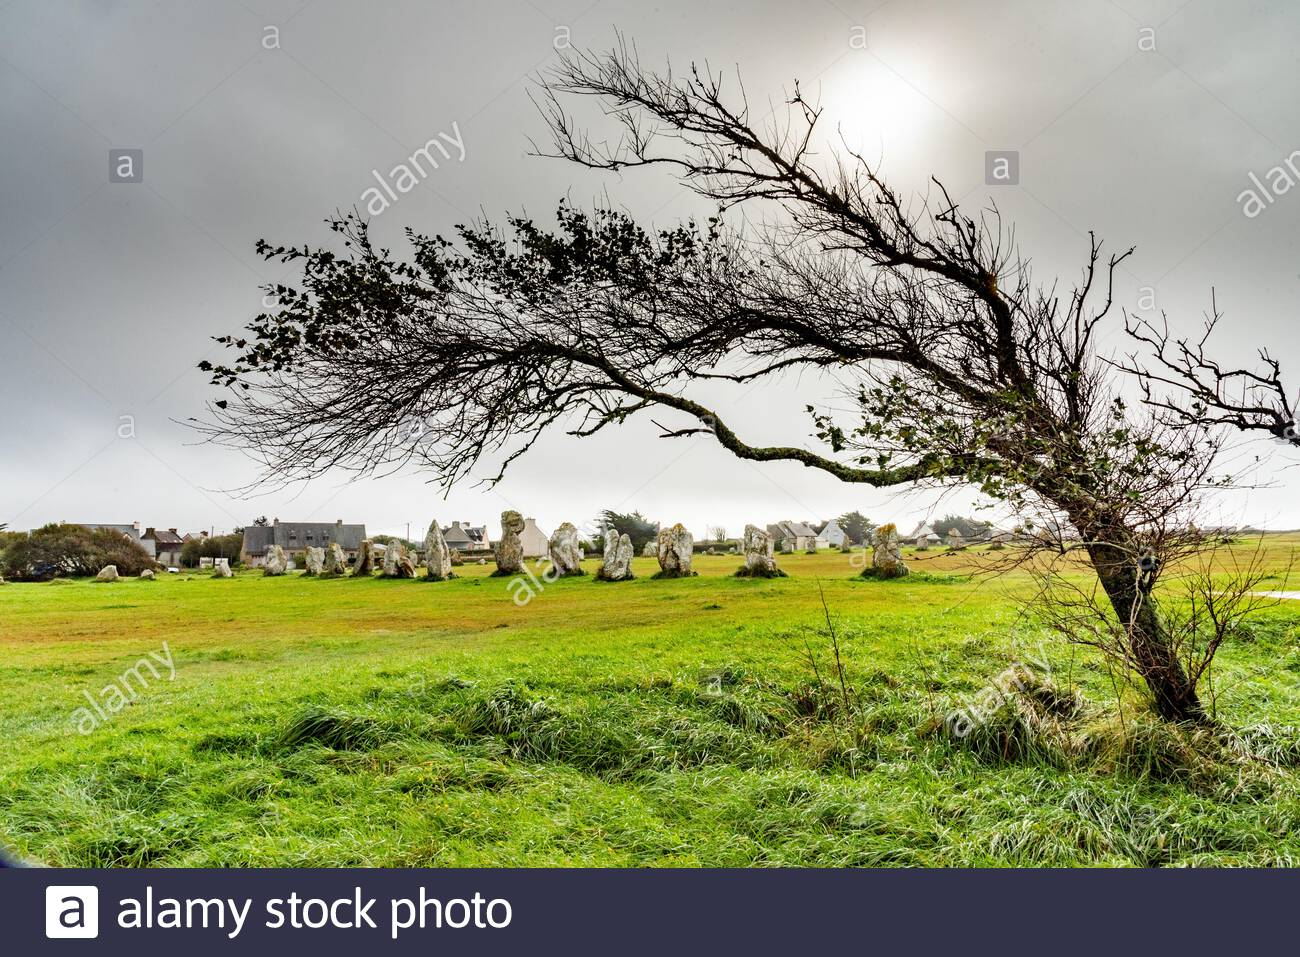 standing-stones-in-brittany-a-deformed-tree-lying-by-the-force-of-the-wind-stands-in-front-of-...jpg